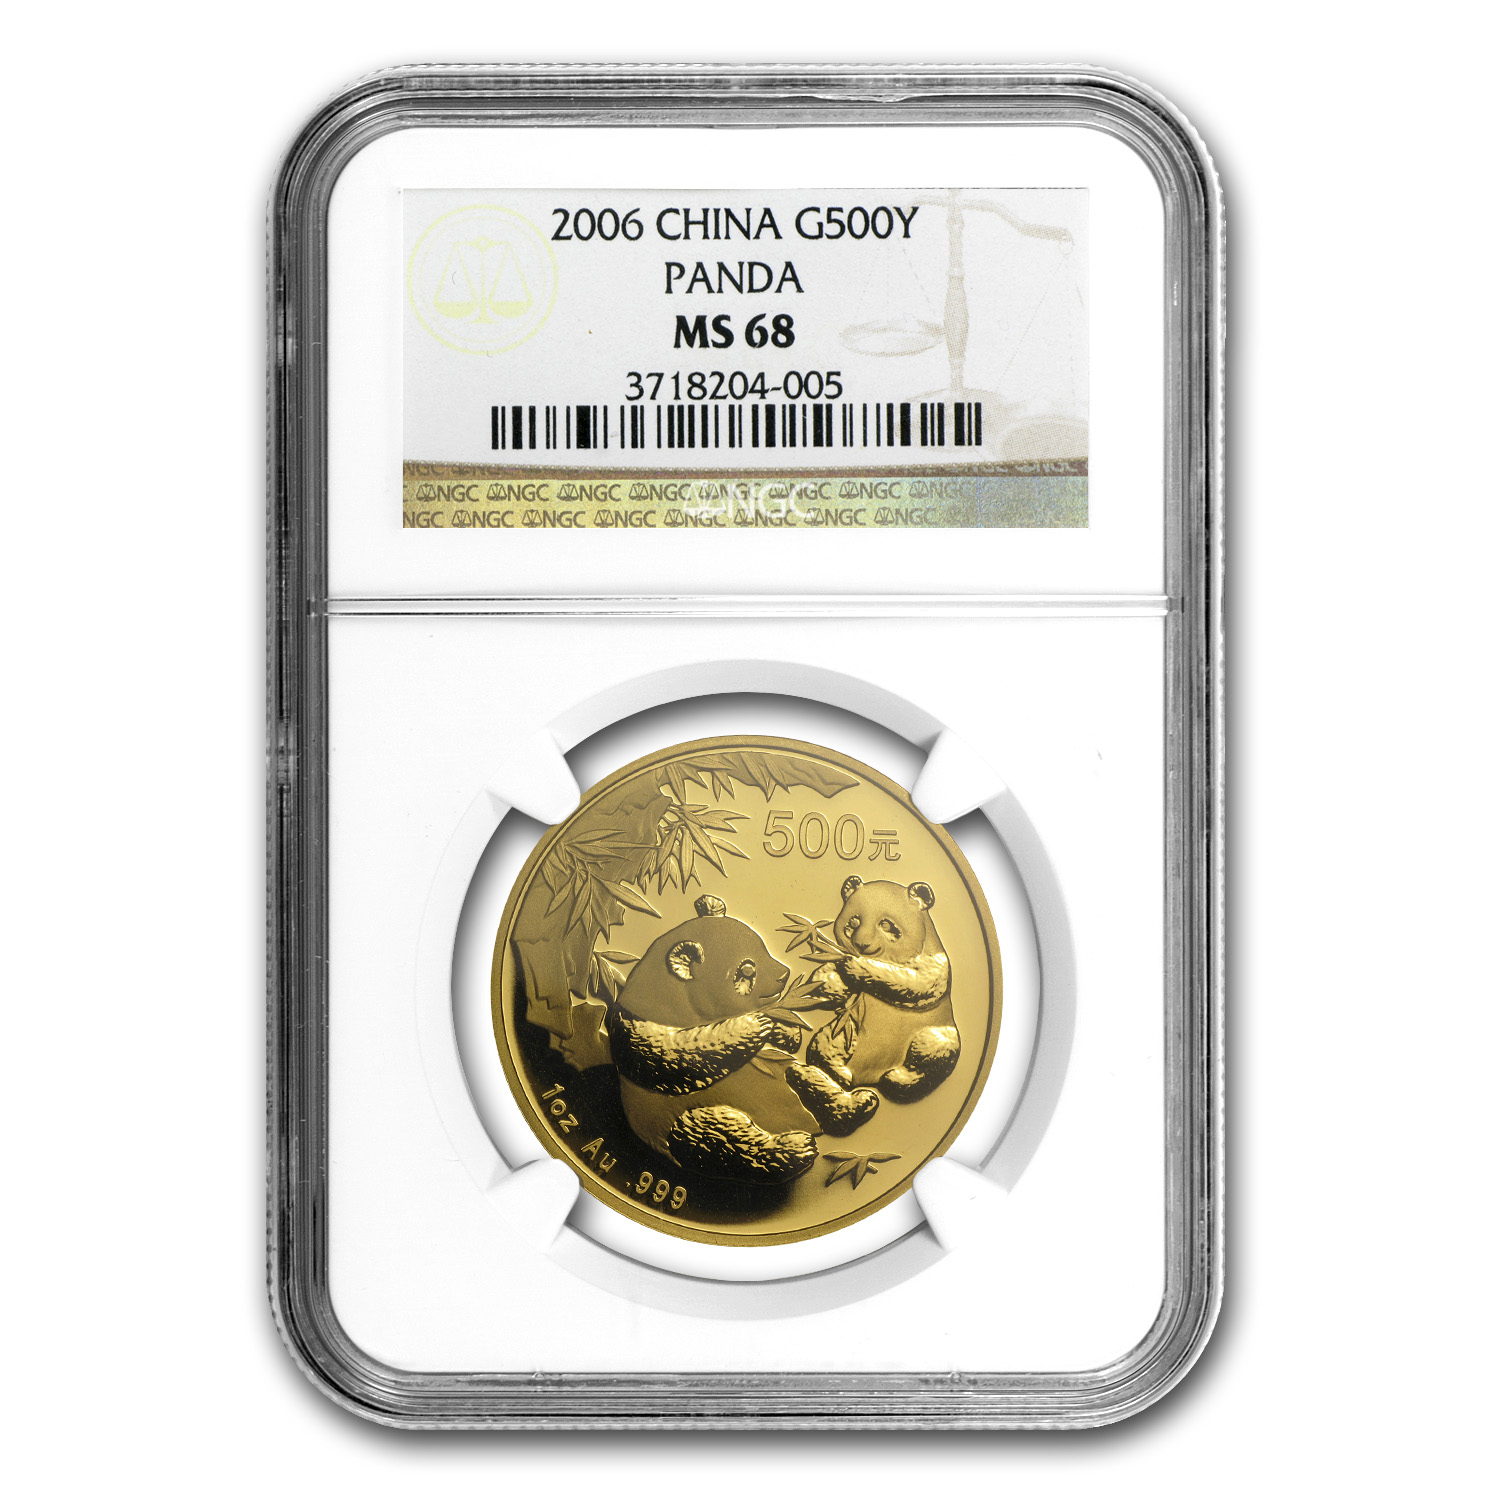 2006 China 1 oz Gold Panda MS-68 NGC